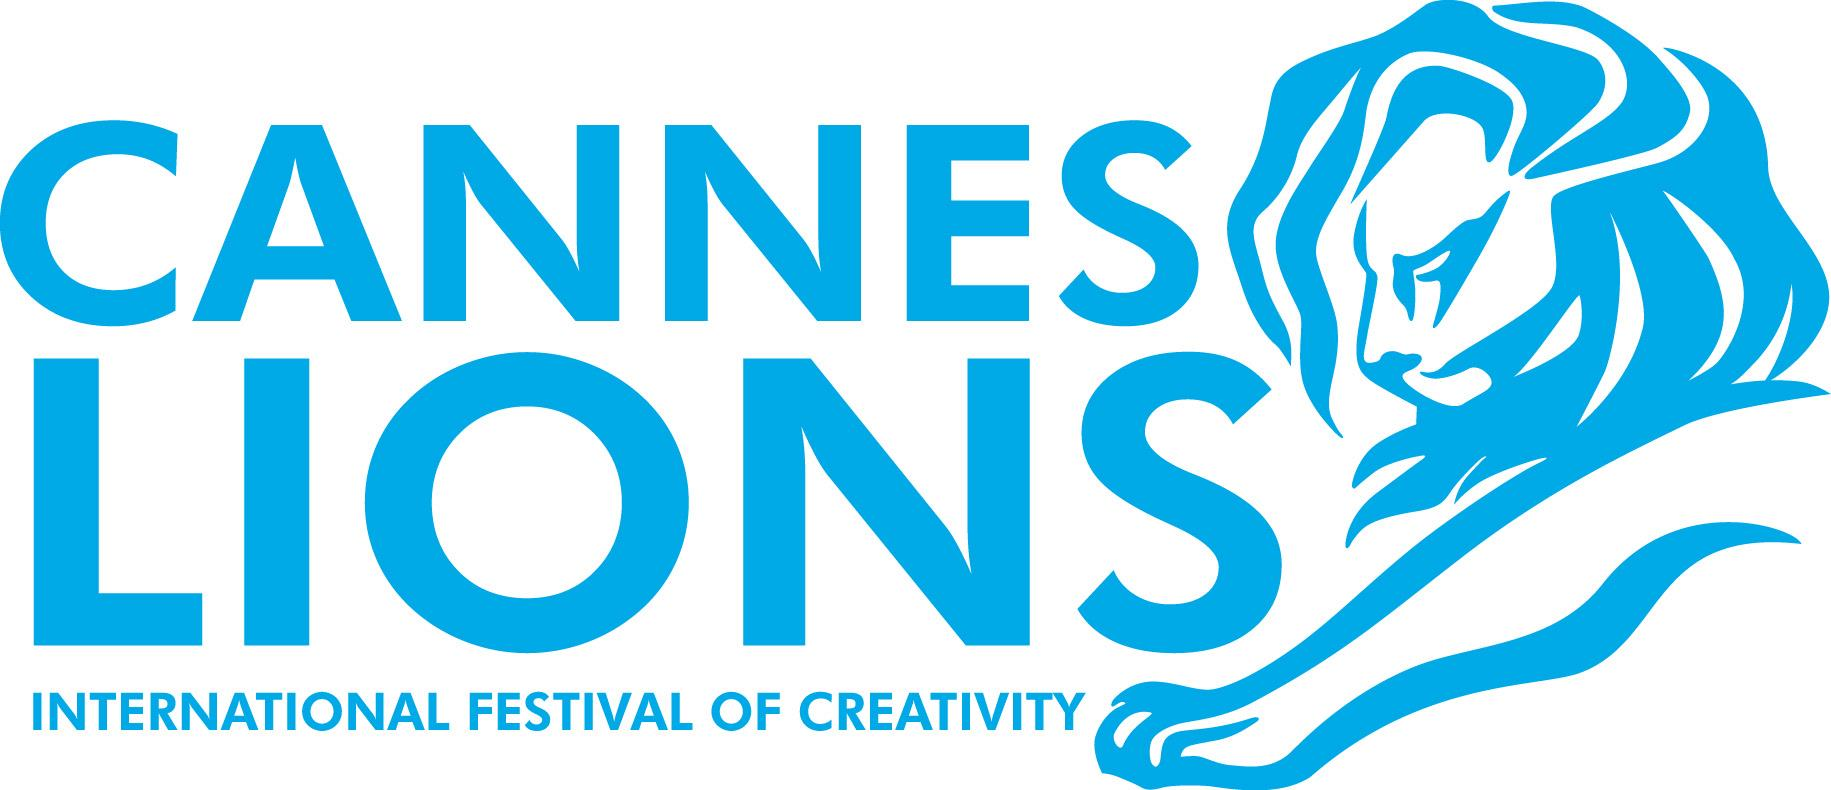 From Intern to Delegate Speaker at Cannes Lions 2015